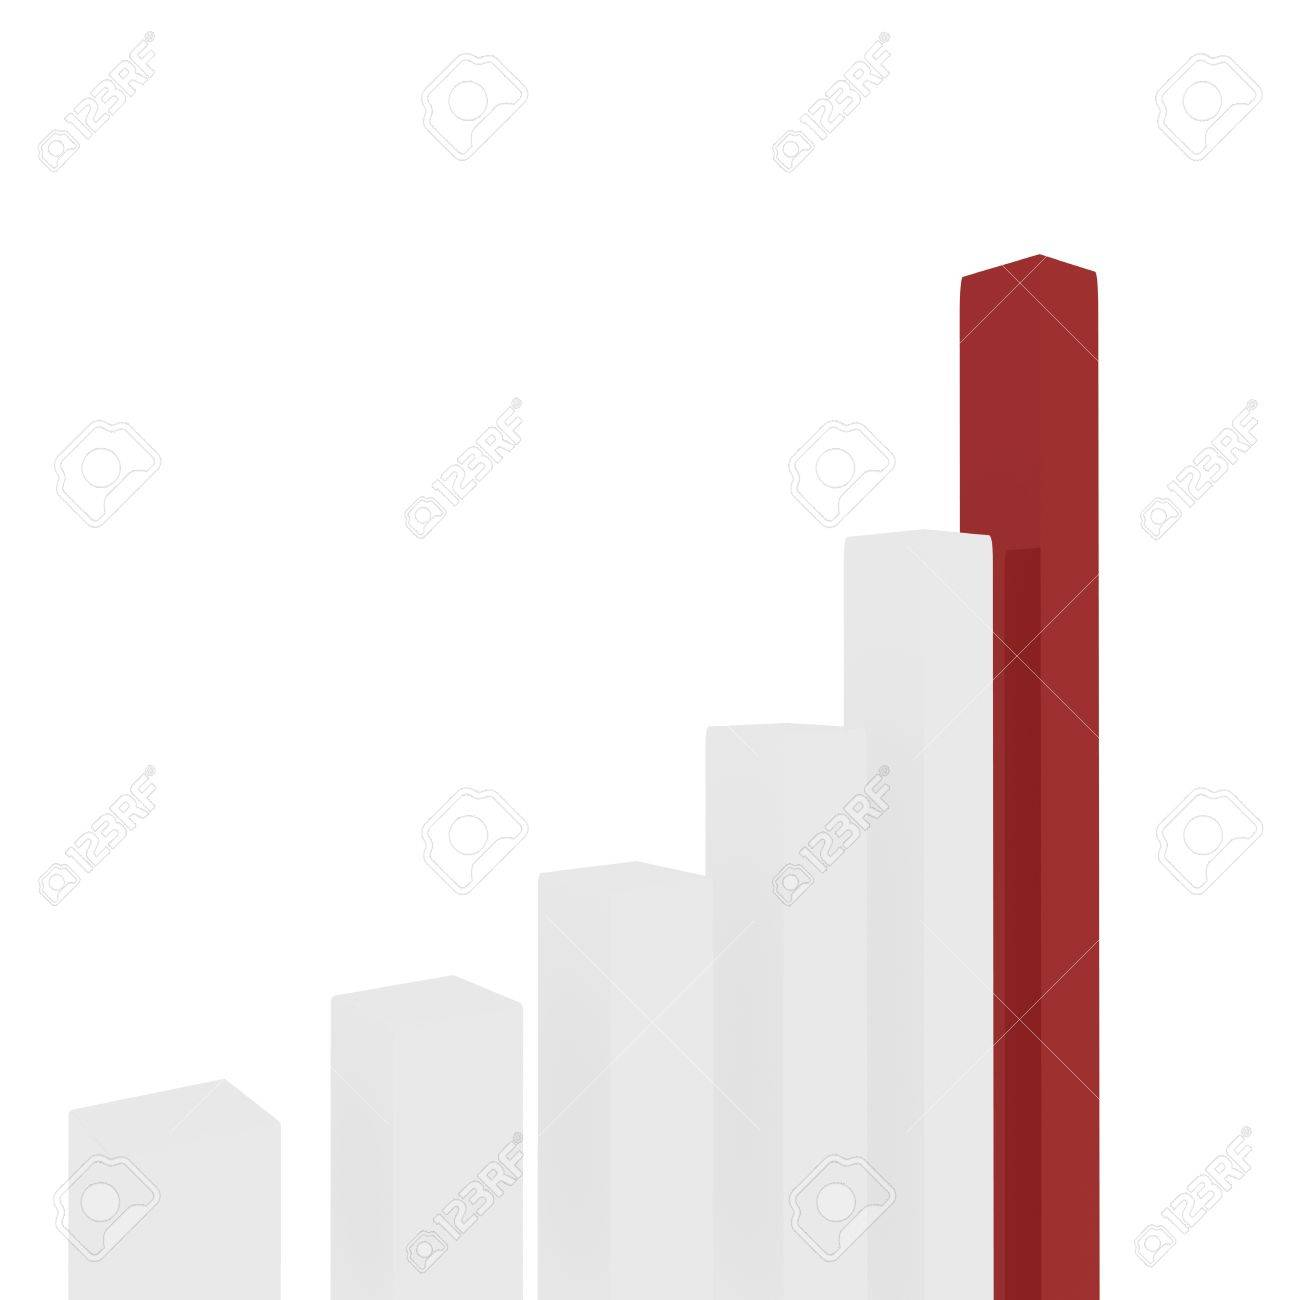 rectangular white pillars arranged in ascending order, one of which is red. computer Simulation Stock Photo - 11745799